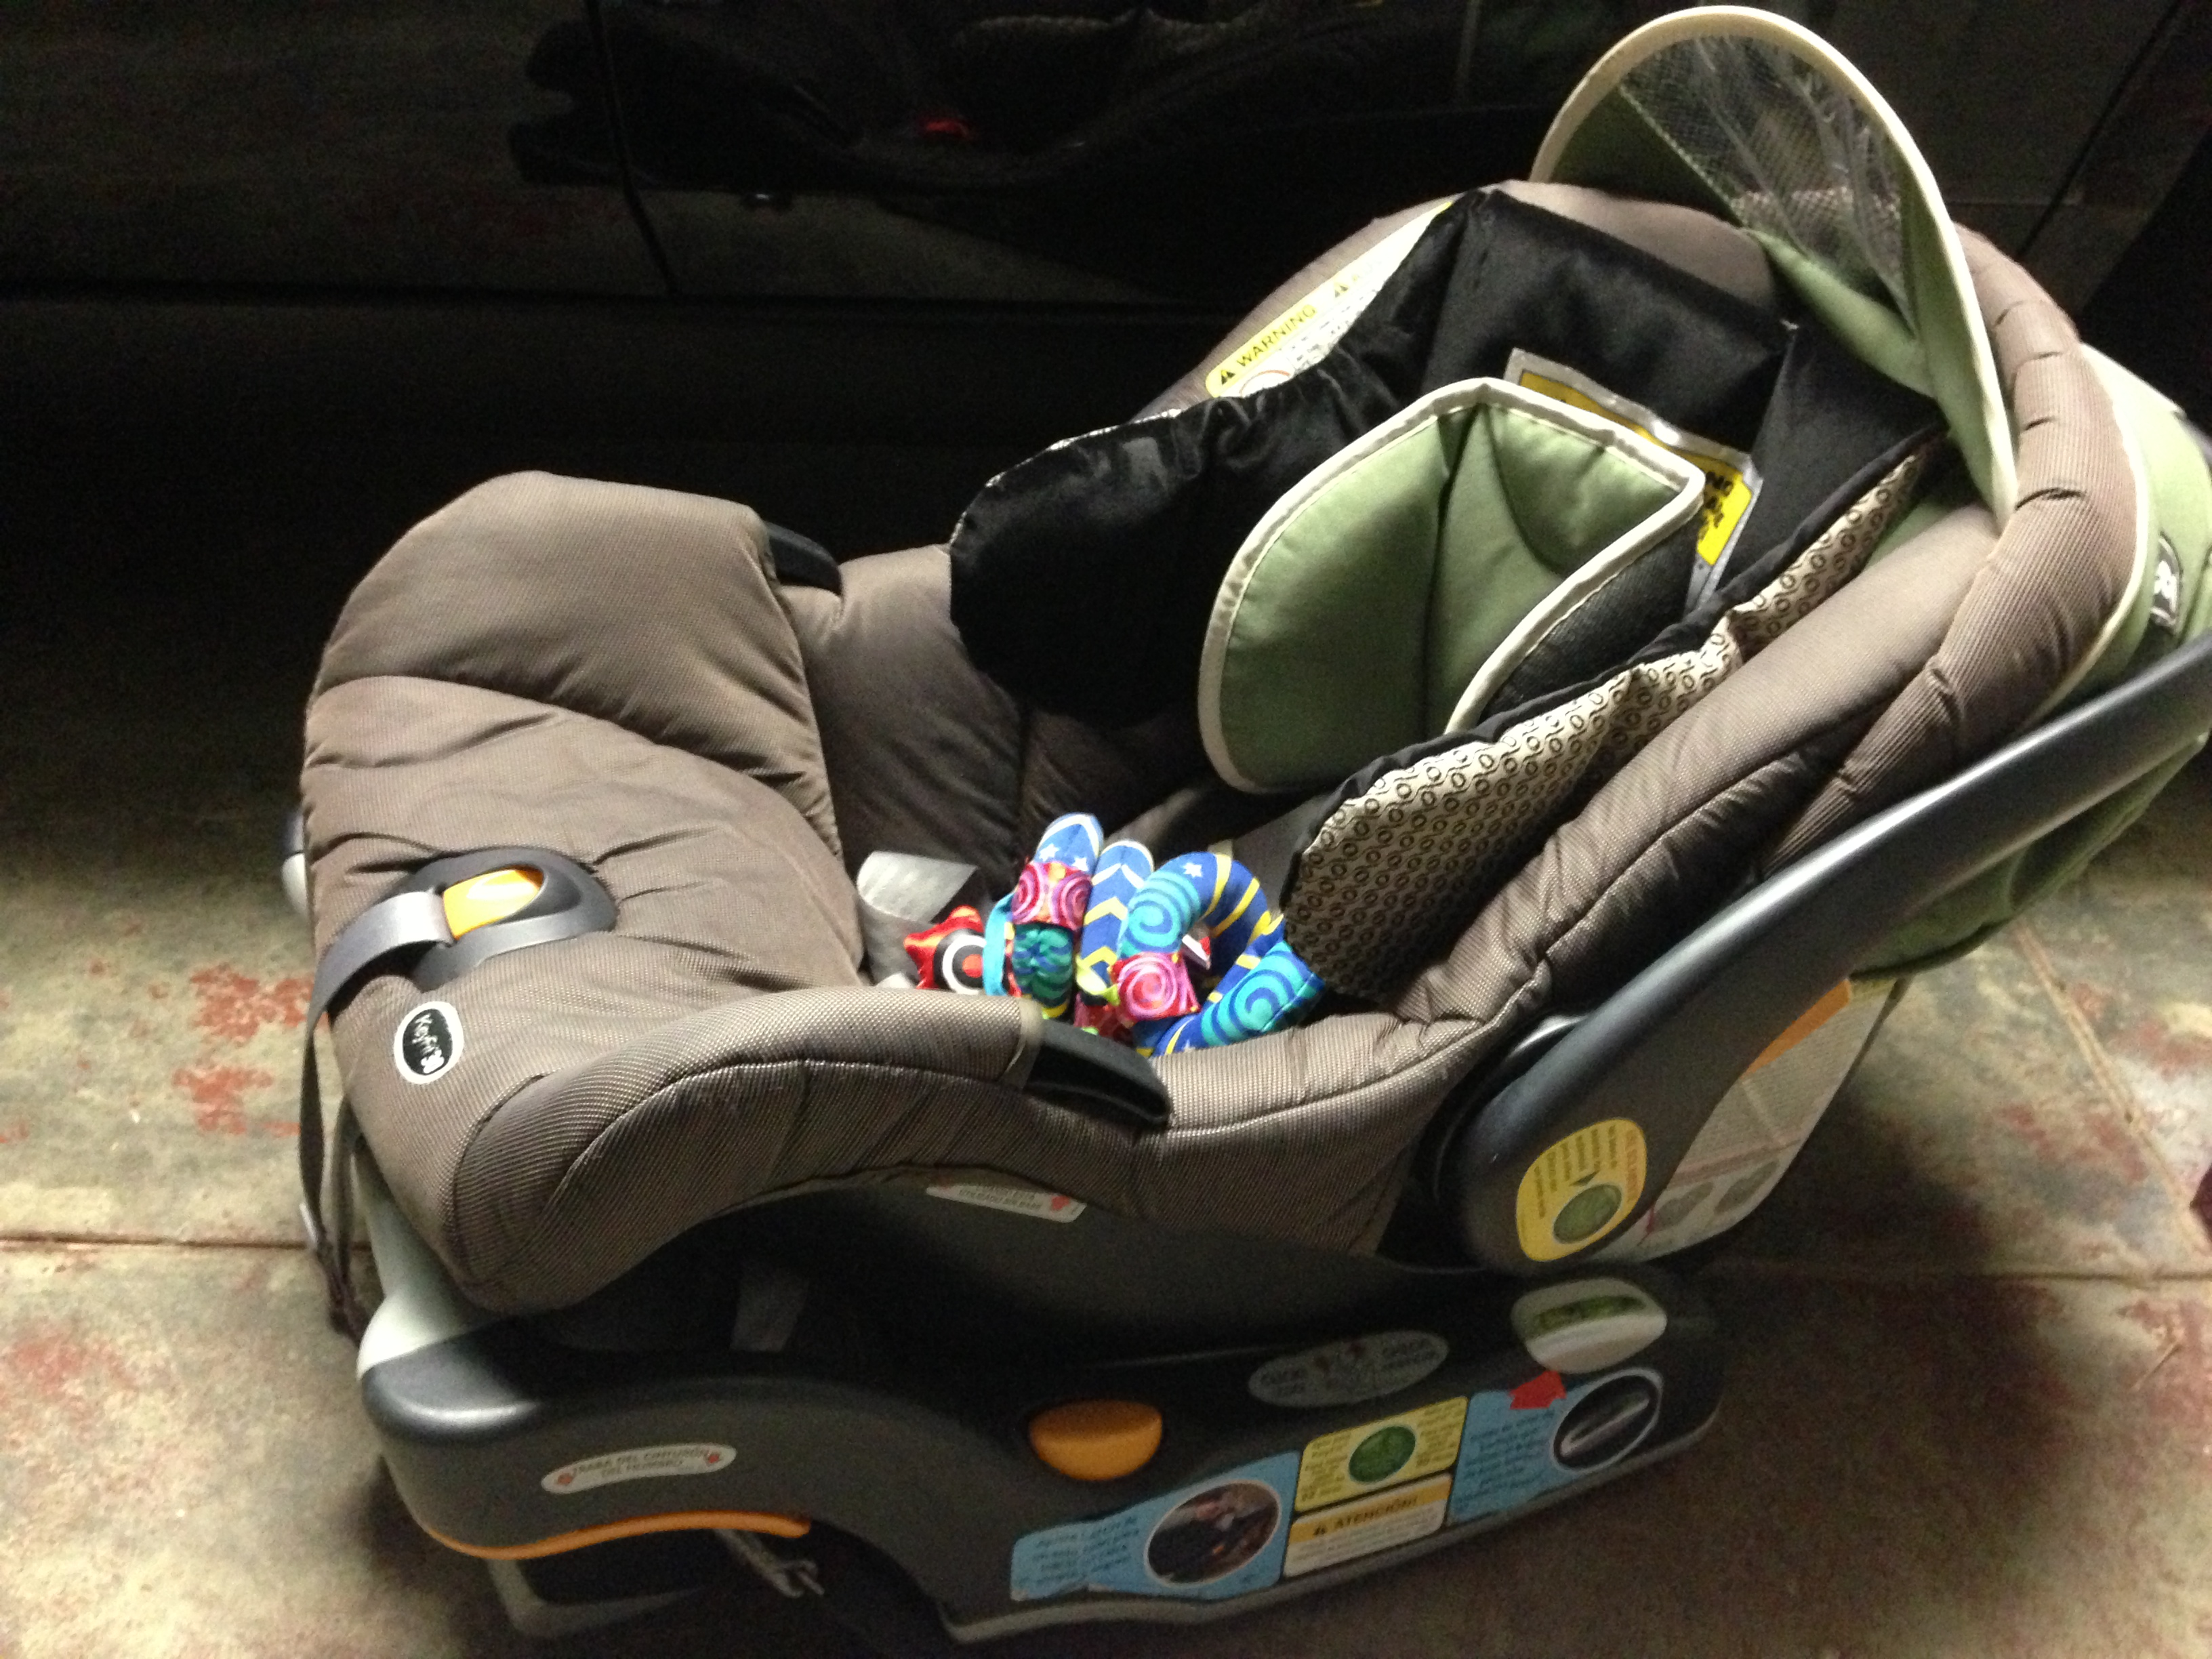 Today's Hint: An Easier Way to Get Help With Installing Car Seats